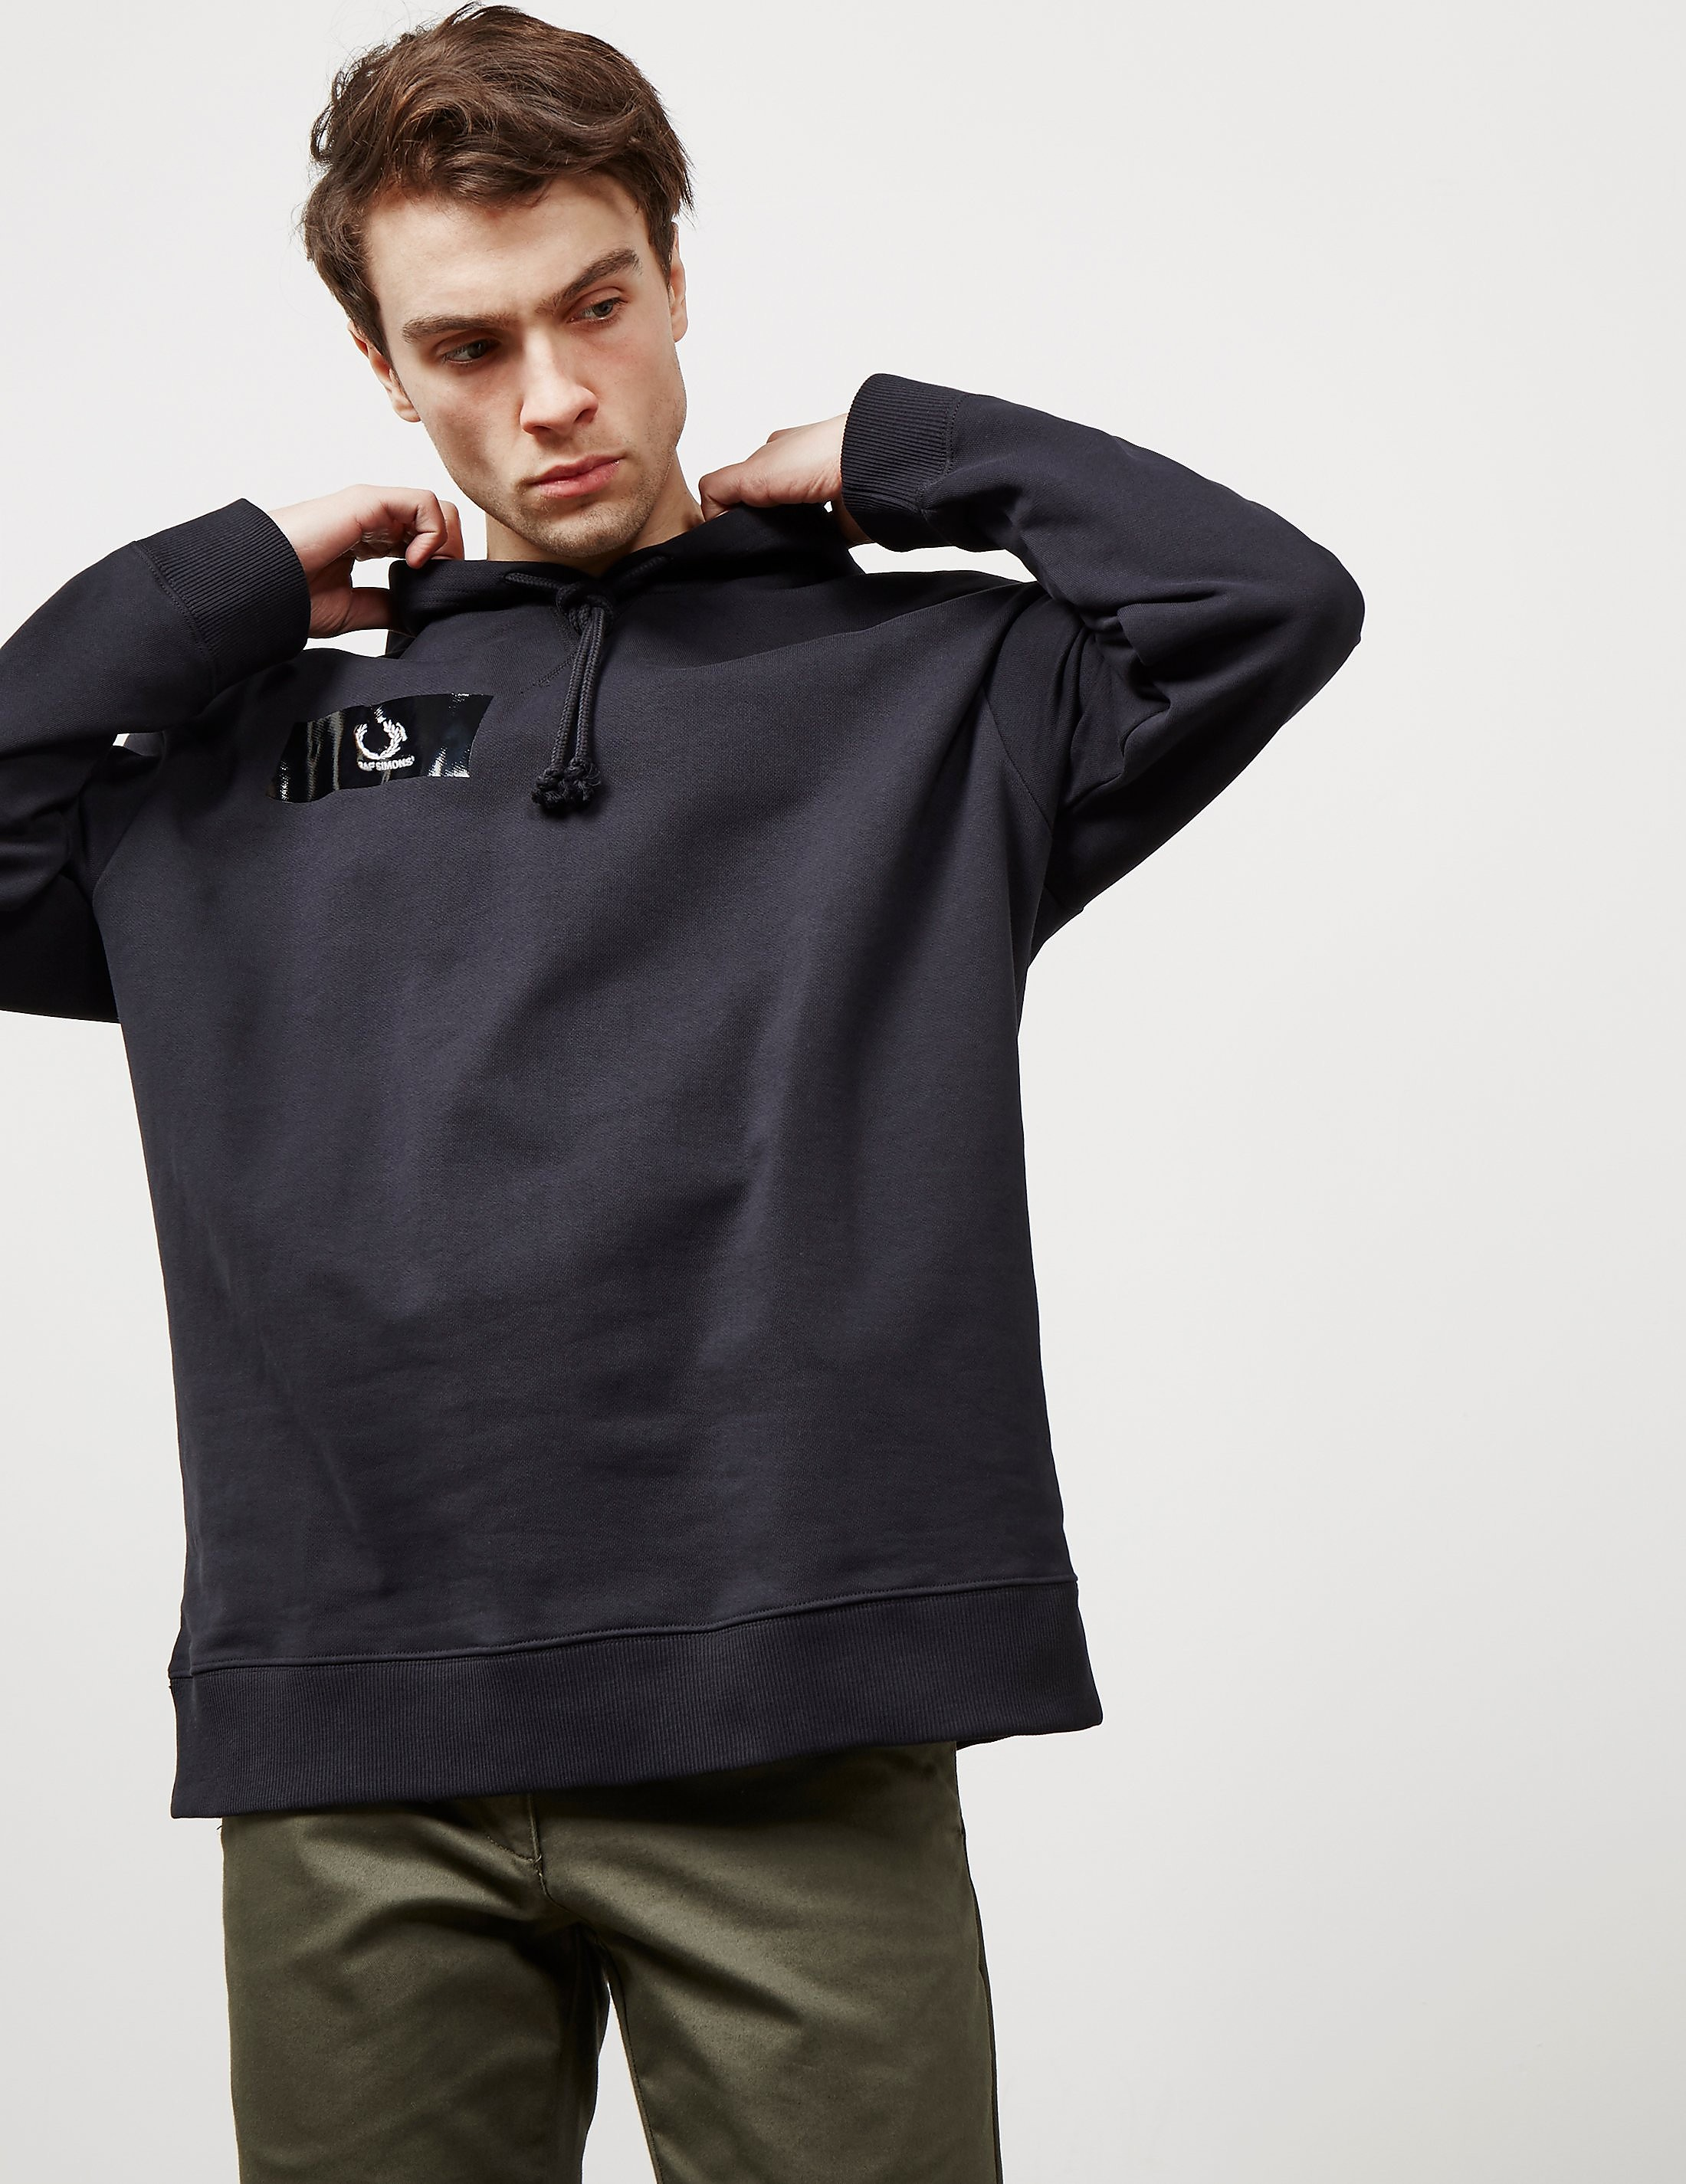 Fred Perry x Raf Simons Overhead Tape Hoody